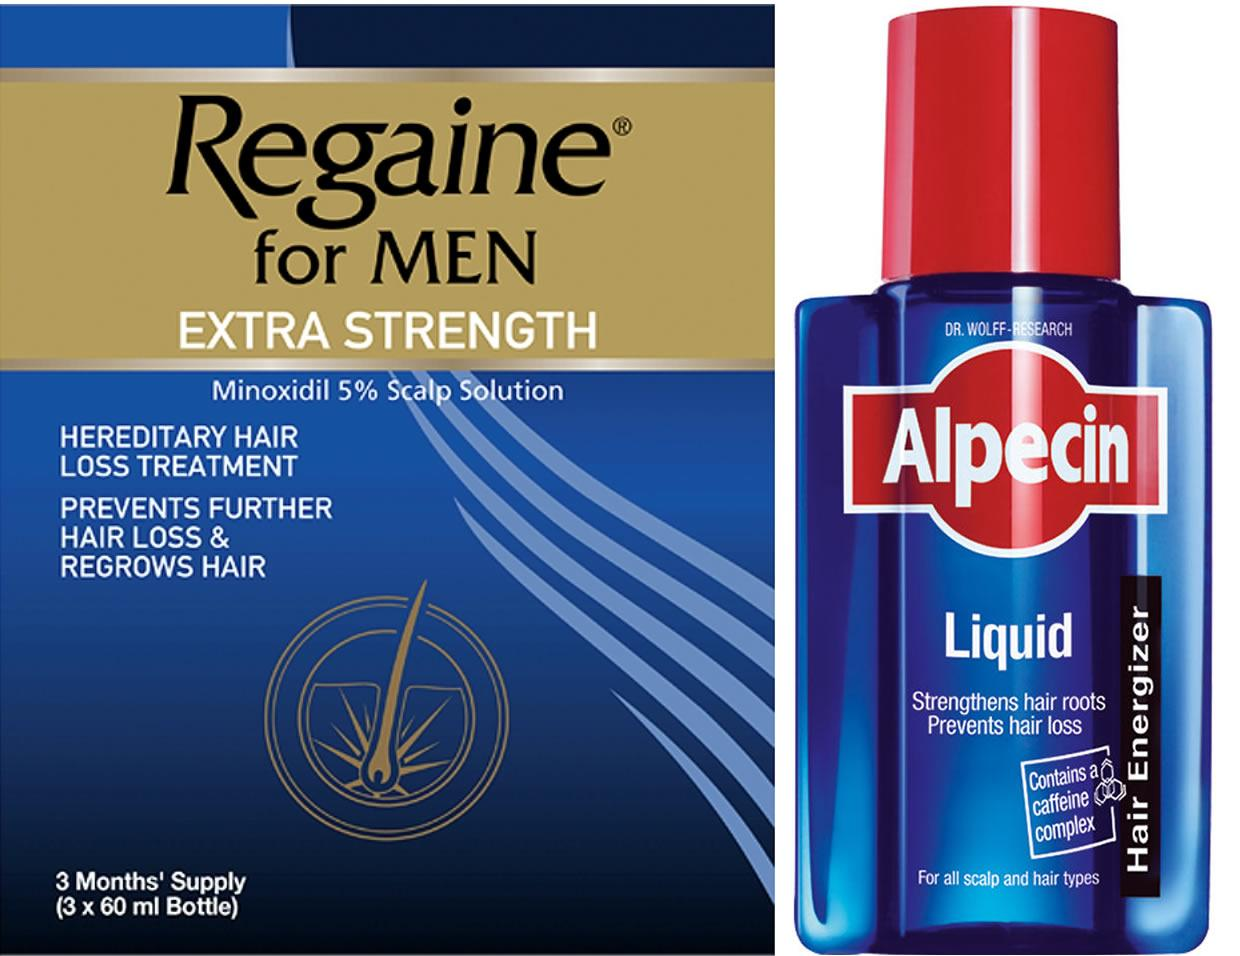 Regaine Men 60ml Lotion Triple Pack & Alpecin Liquid 200ml